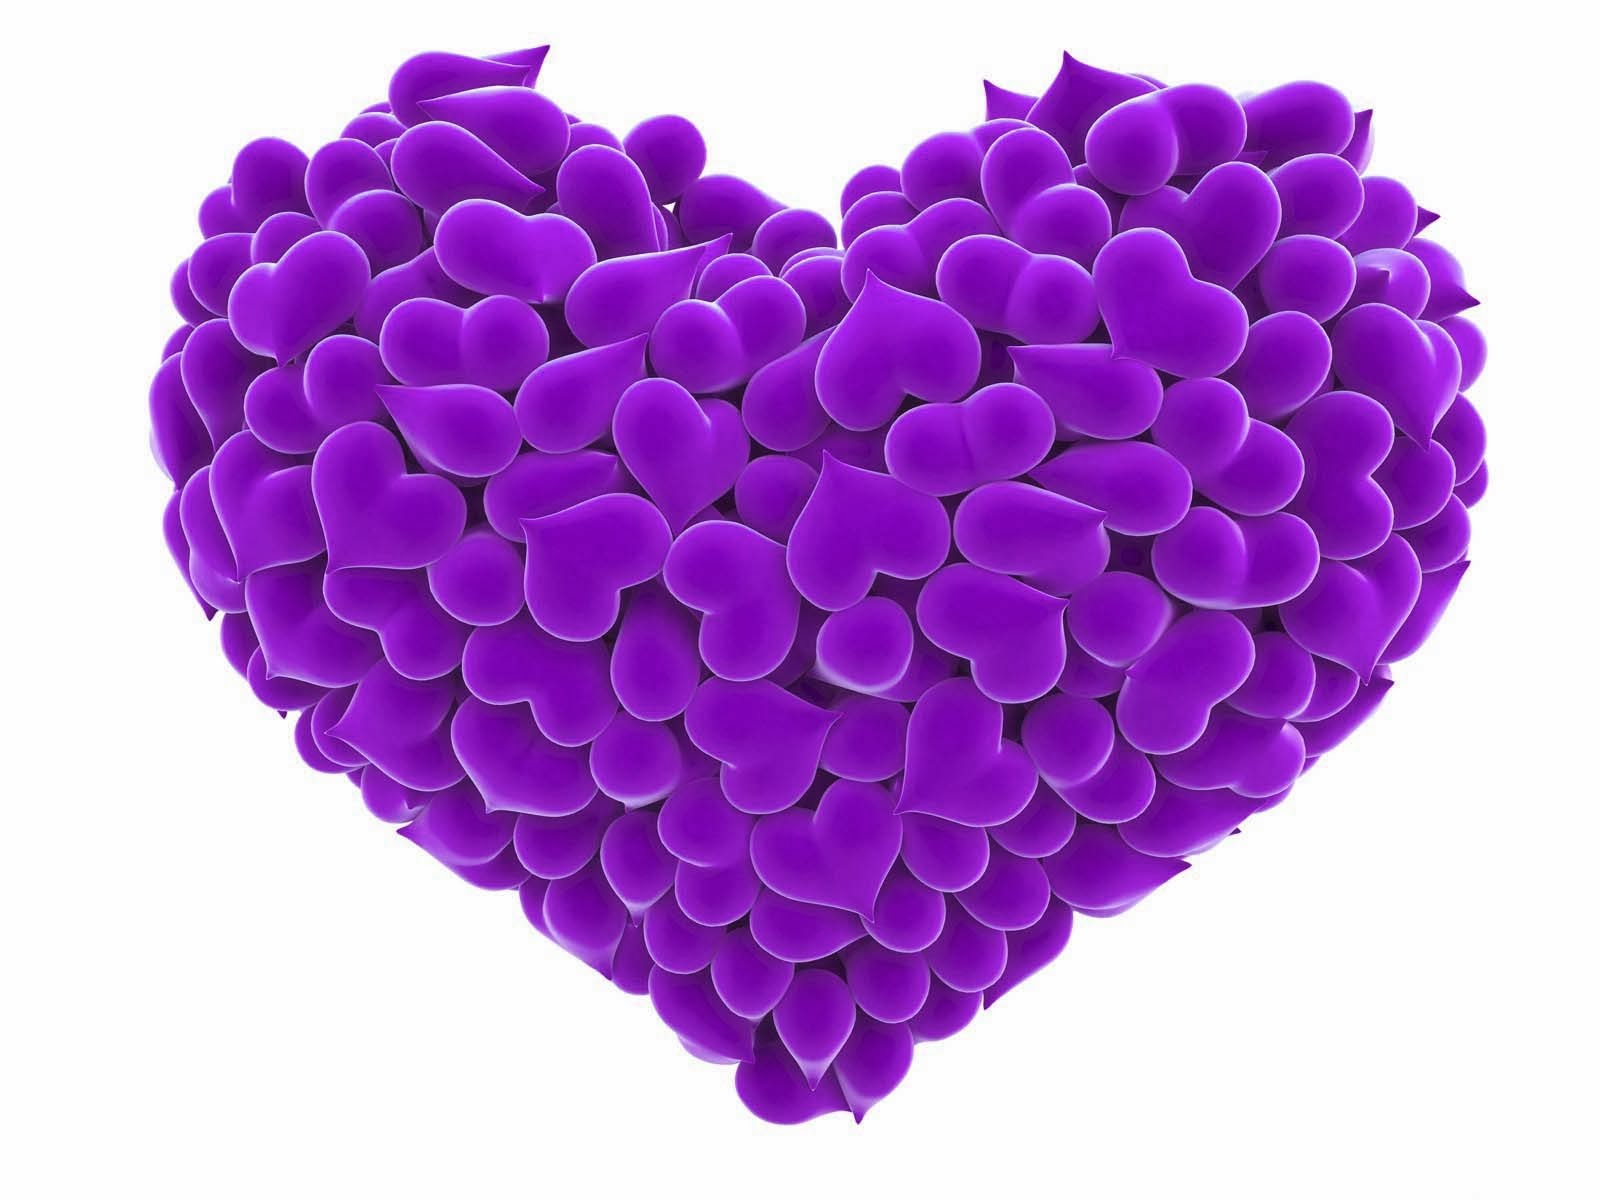 heart-love-purple-color-wallpaper